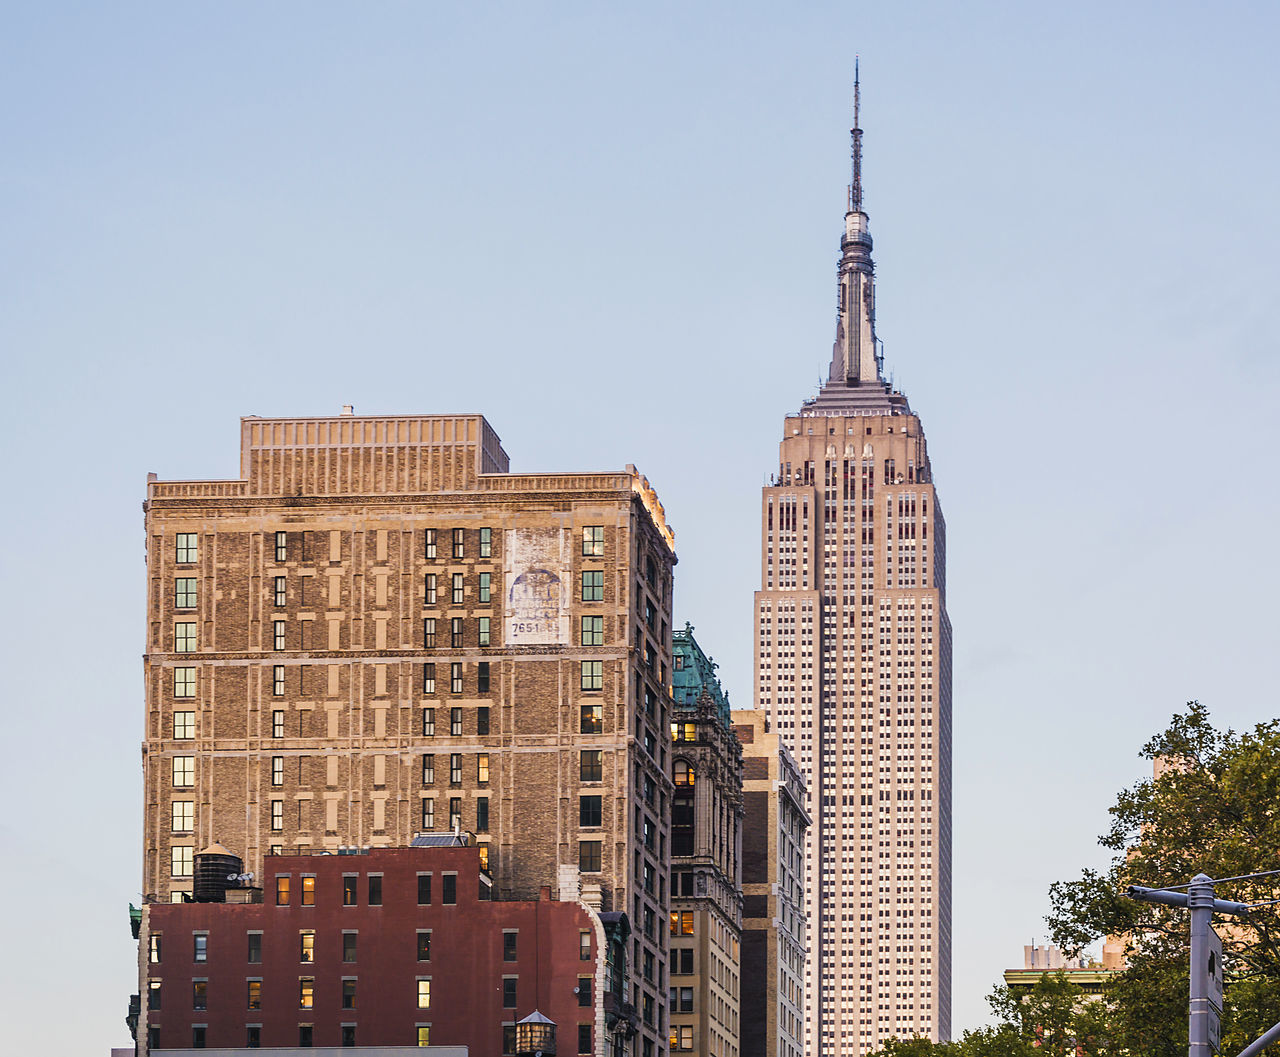 Empire state building facade. It stood as the world's tallest building for more than 40 years from 1931 to 1972 Architecture Business Finance And Industry City Cityscape Clock Clock Tower Day Empire State Building Facade Building New York City No People Outdoors Sky Skyscraper Tower Travel Destinations Urban Skyline